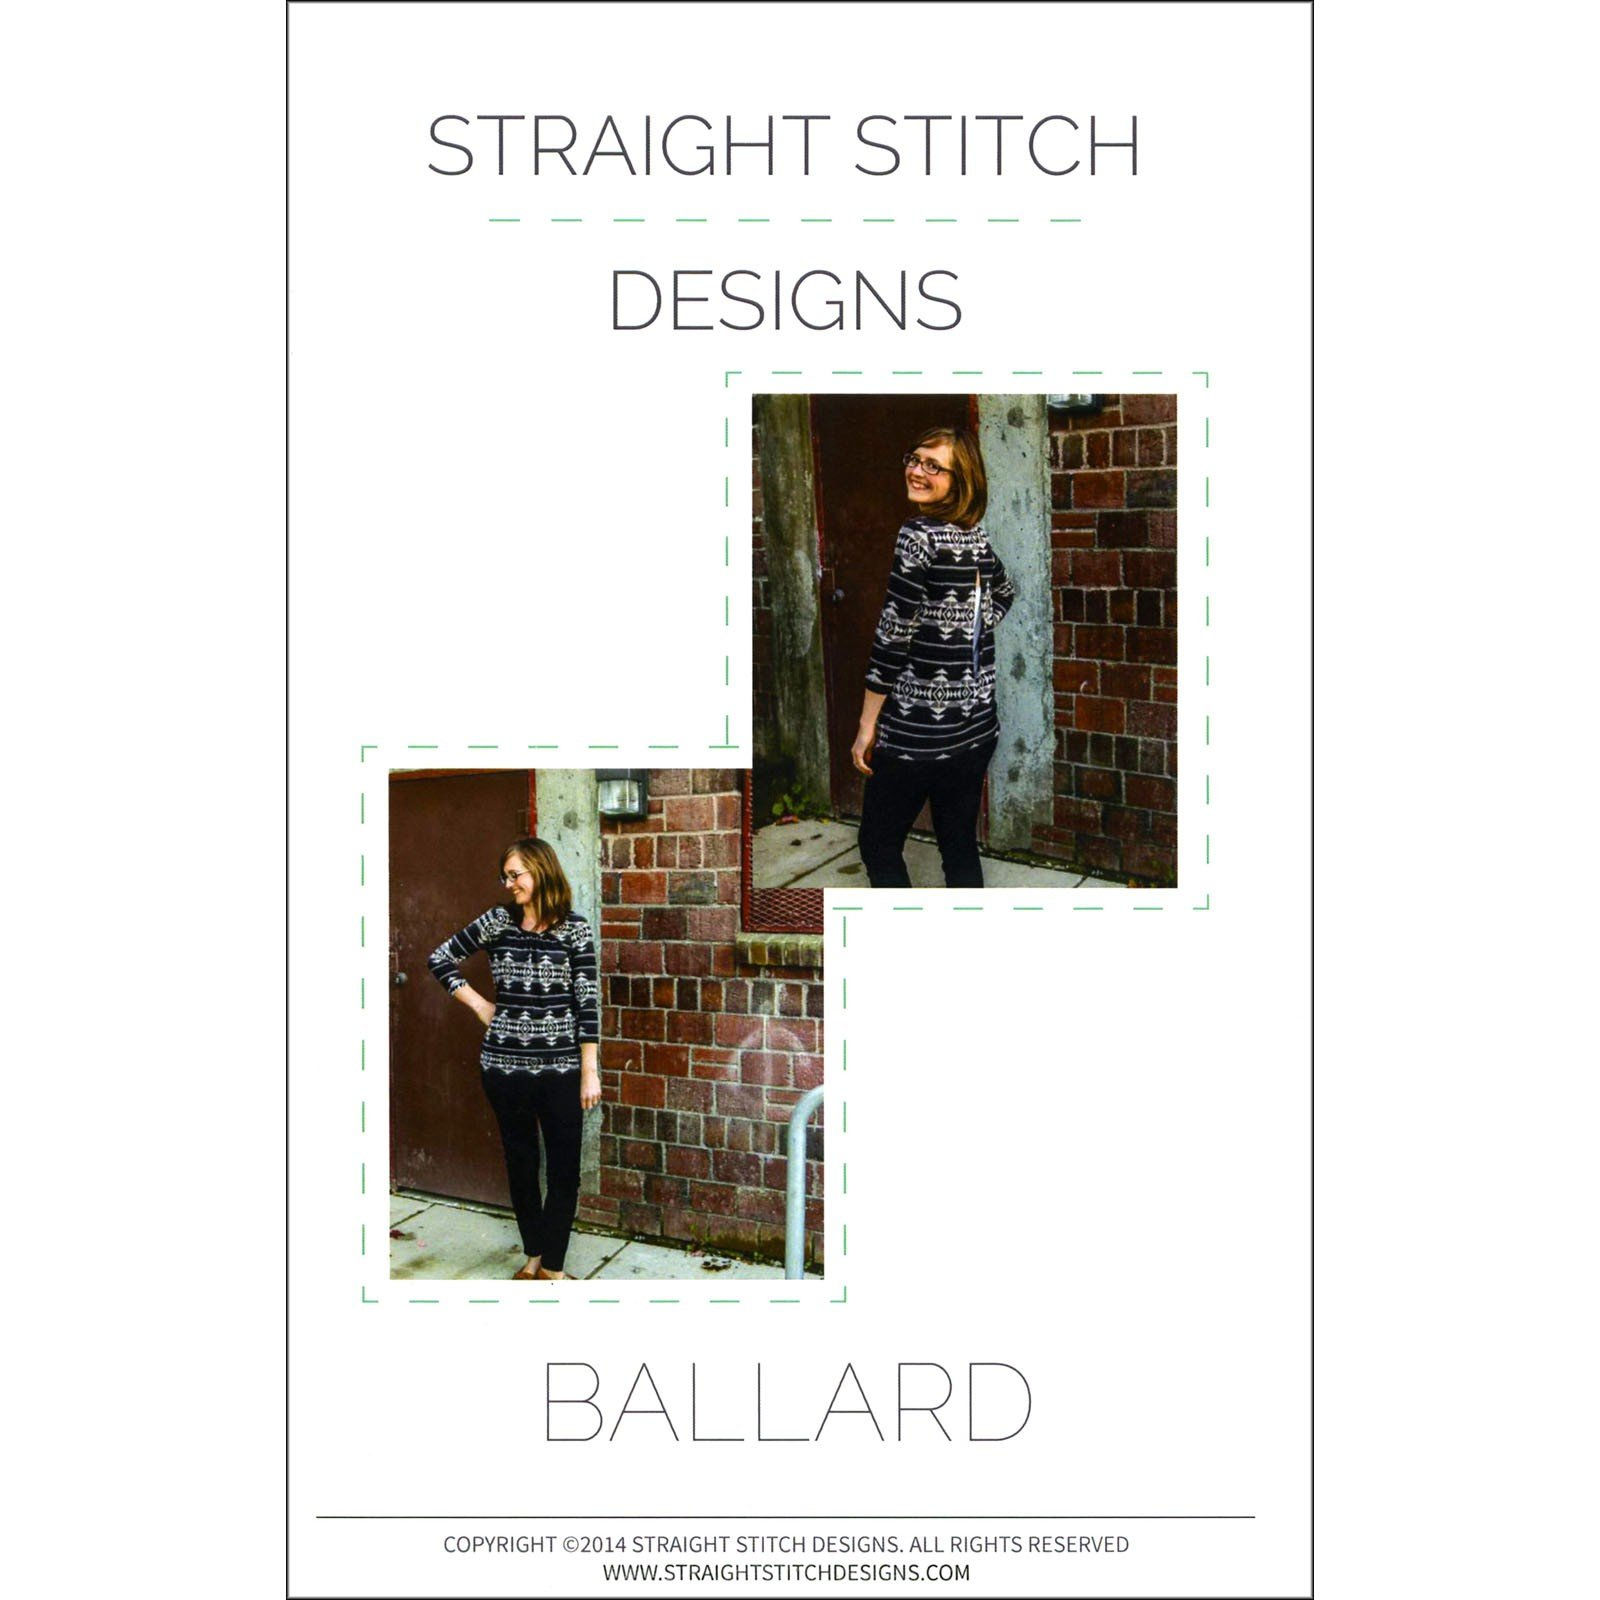 ballard design promo code free 28 stores similar to store locations amp hours